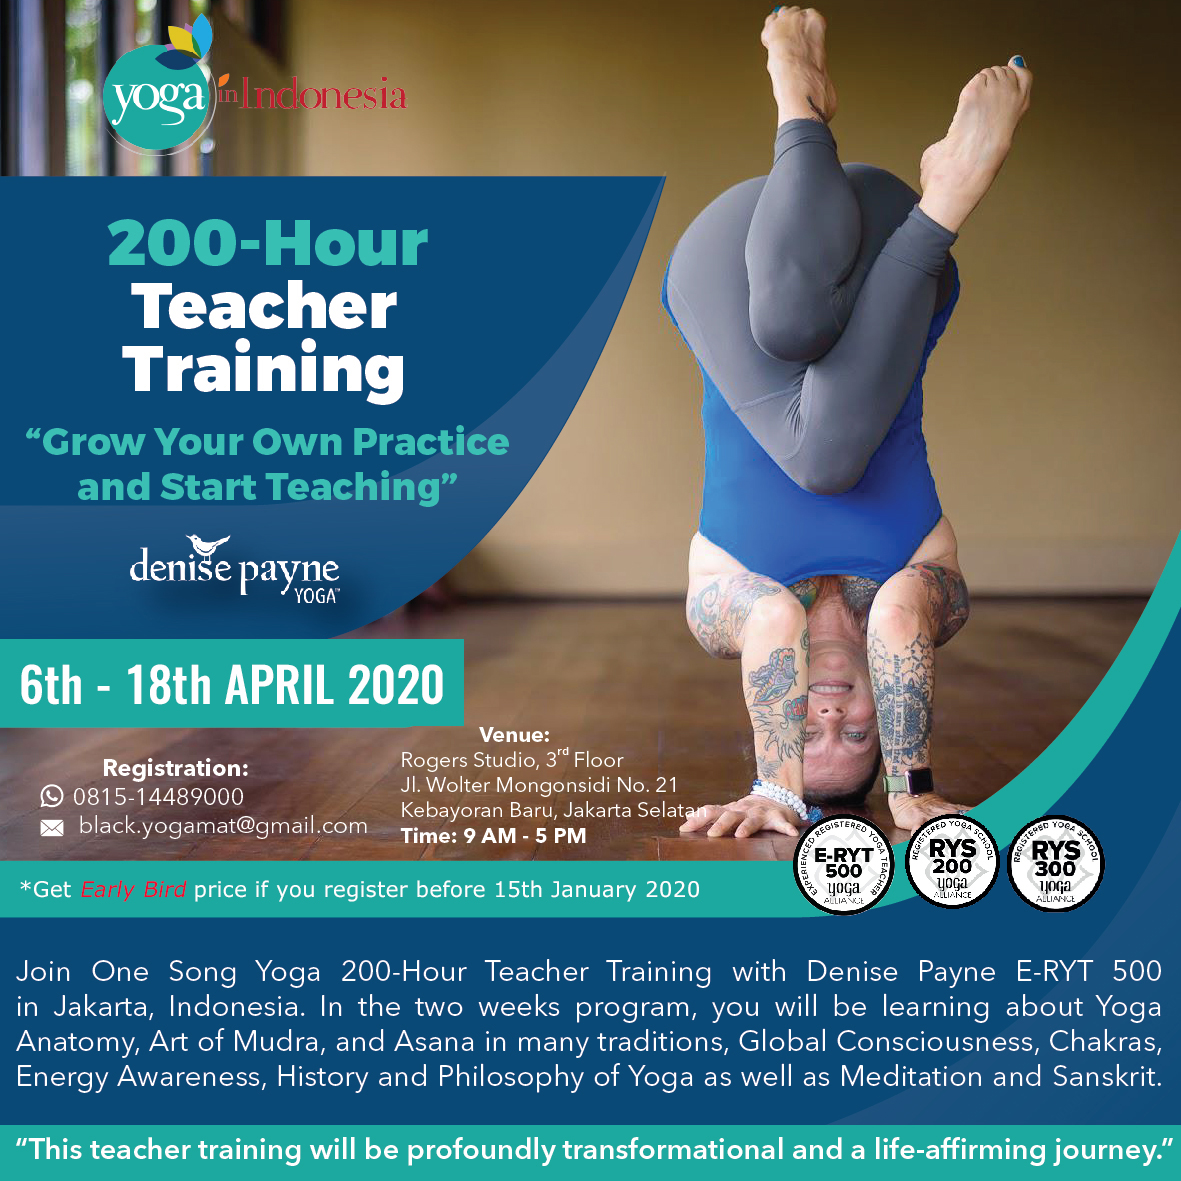 200-Hour Teacher Training with Denise Payne